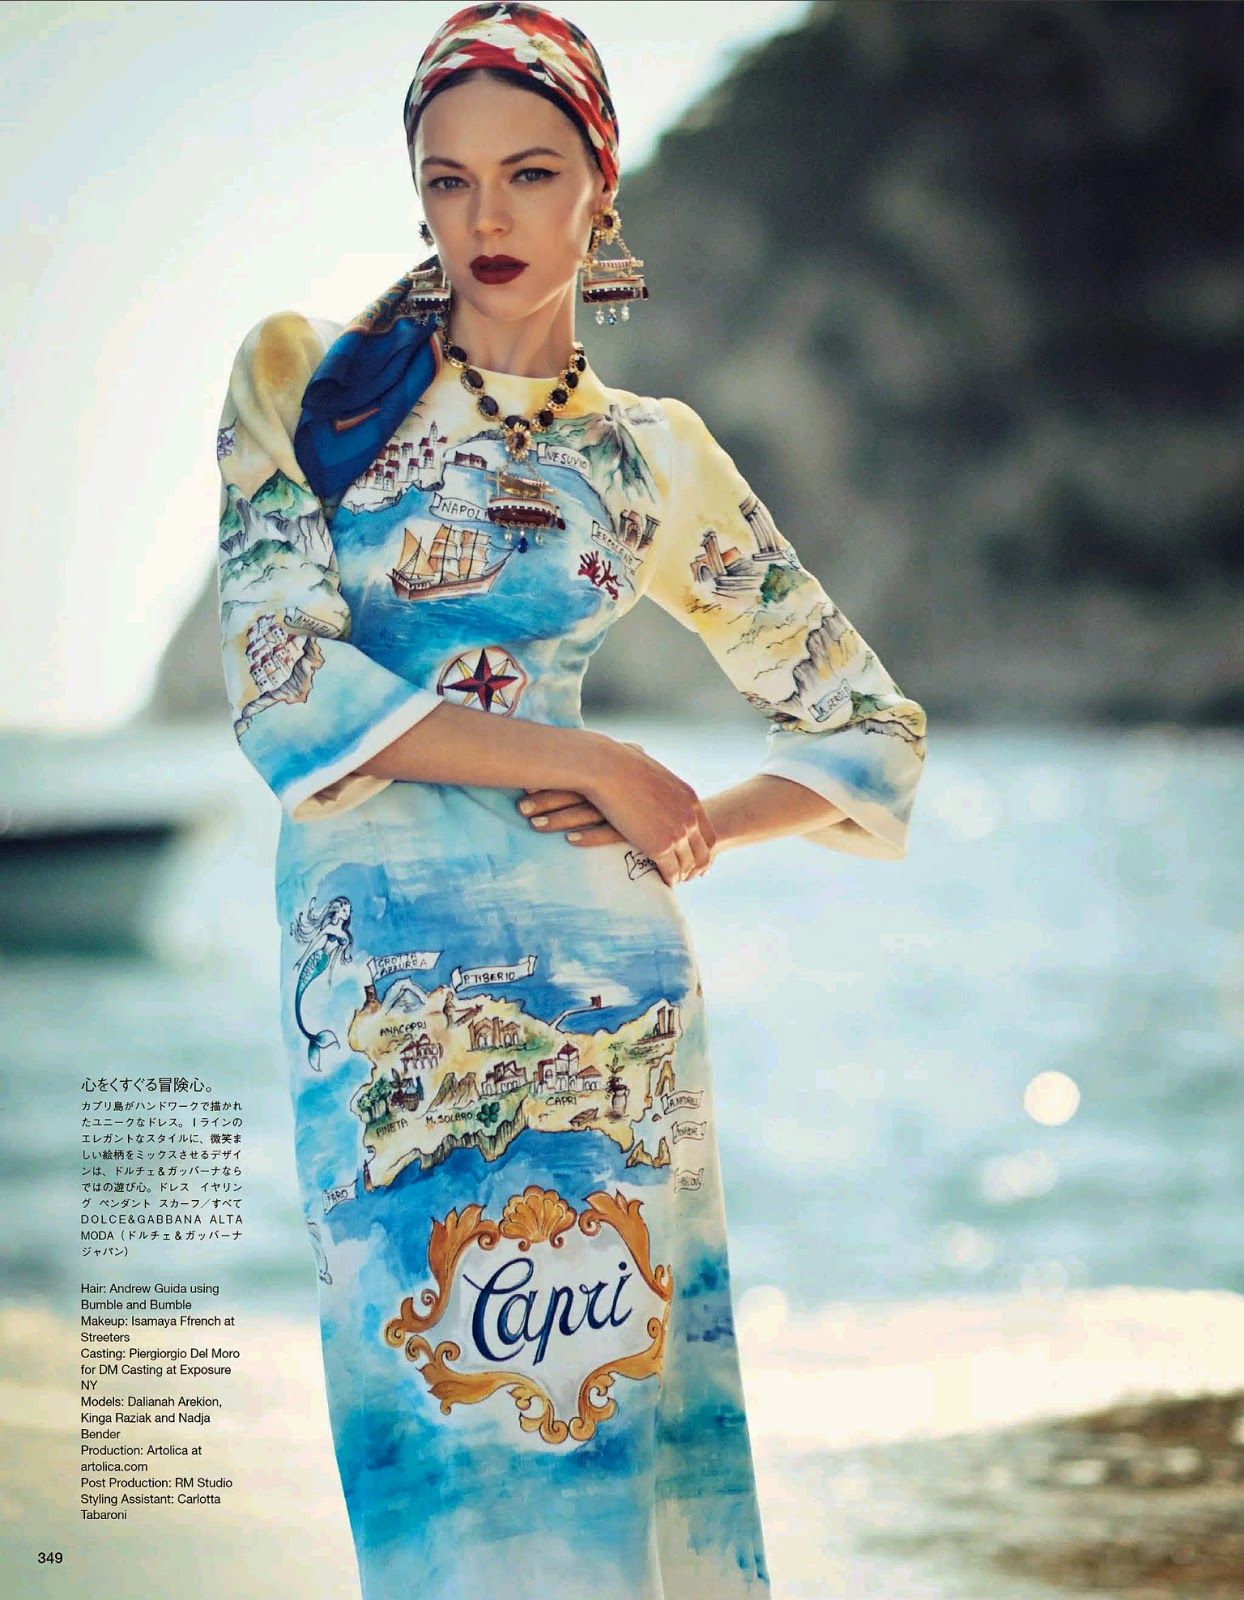 Vogue Japan October 2014 : La Canzone Del Mare